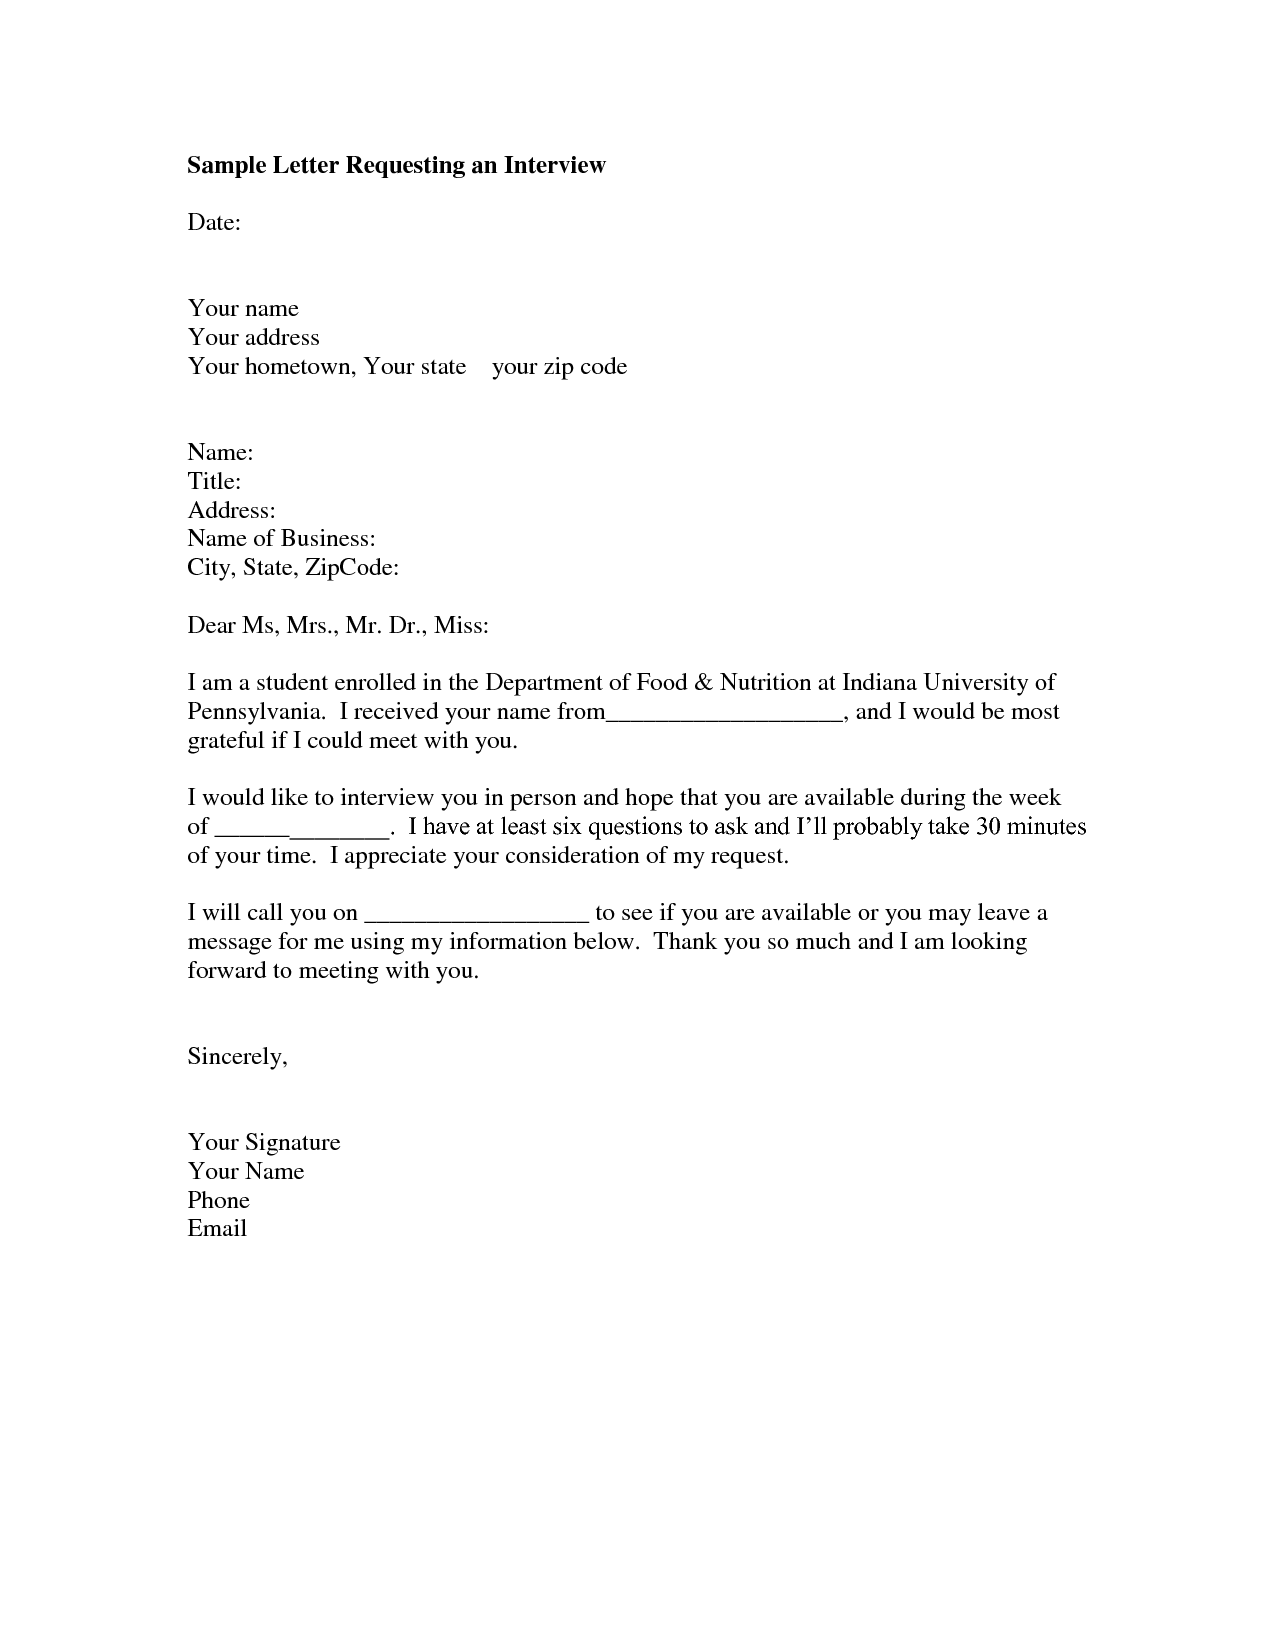 Interview request letter sample format of a letter you can use interview request letter sample format of a letter you can use to request an interview mitanshu Gallery